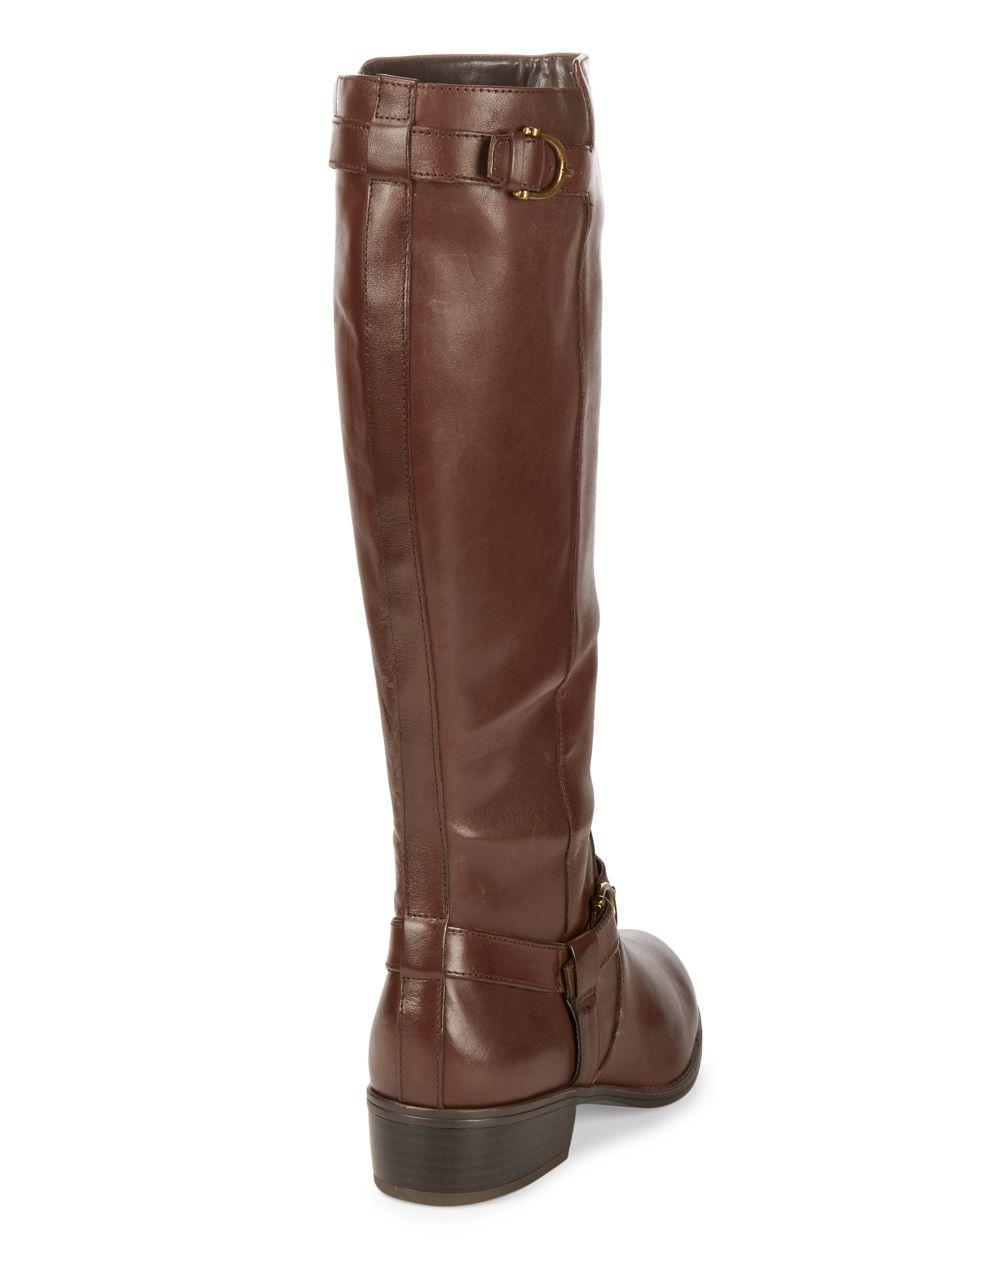 969cb20c1b6a Lauren By Ralph Lauren Margarite Wide Calf Leather Boots in Brown - Lyst